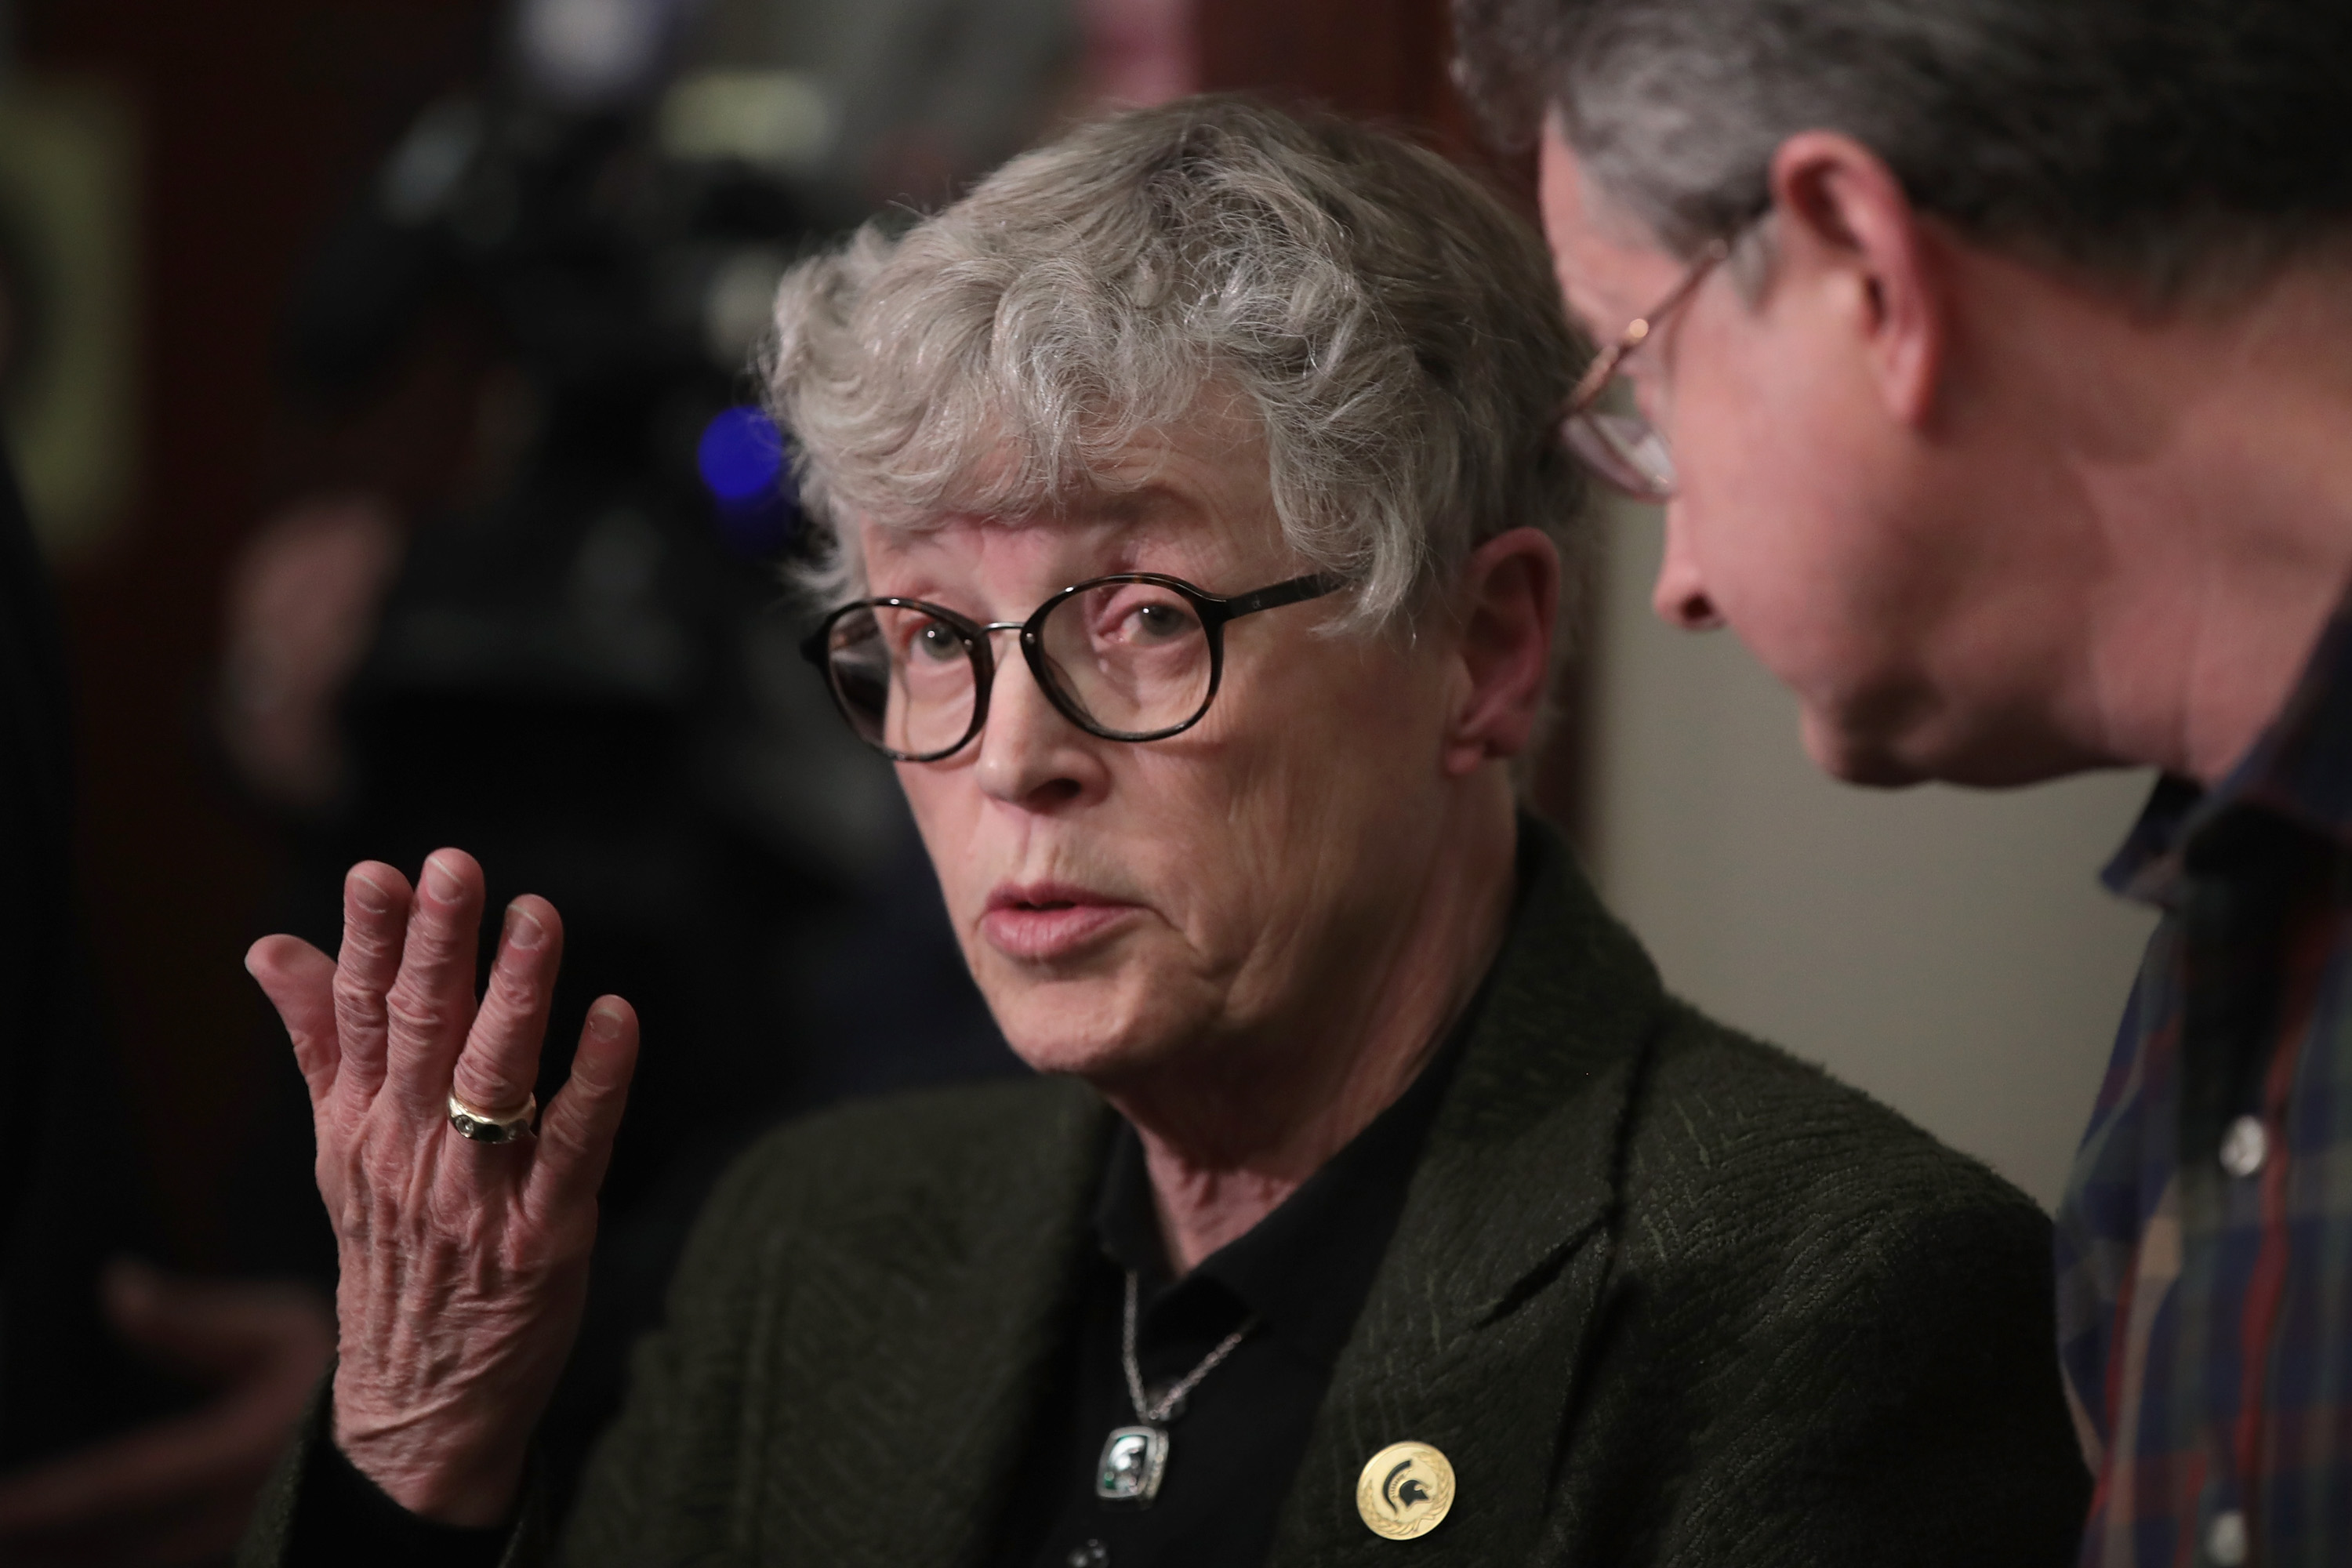 Michigan State University (MSU) President Lou Anna Simon answers a question after being confronted by former MSU gymnast Lidsey Lemke during a break in the sentencing hearing for Larry Nassar, who has been accused of molesting more than 100 girls while he was a physician for USA Gymnastics and Michigan State University.